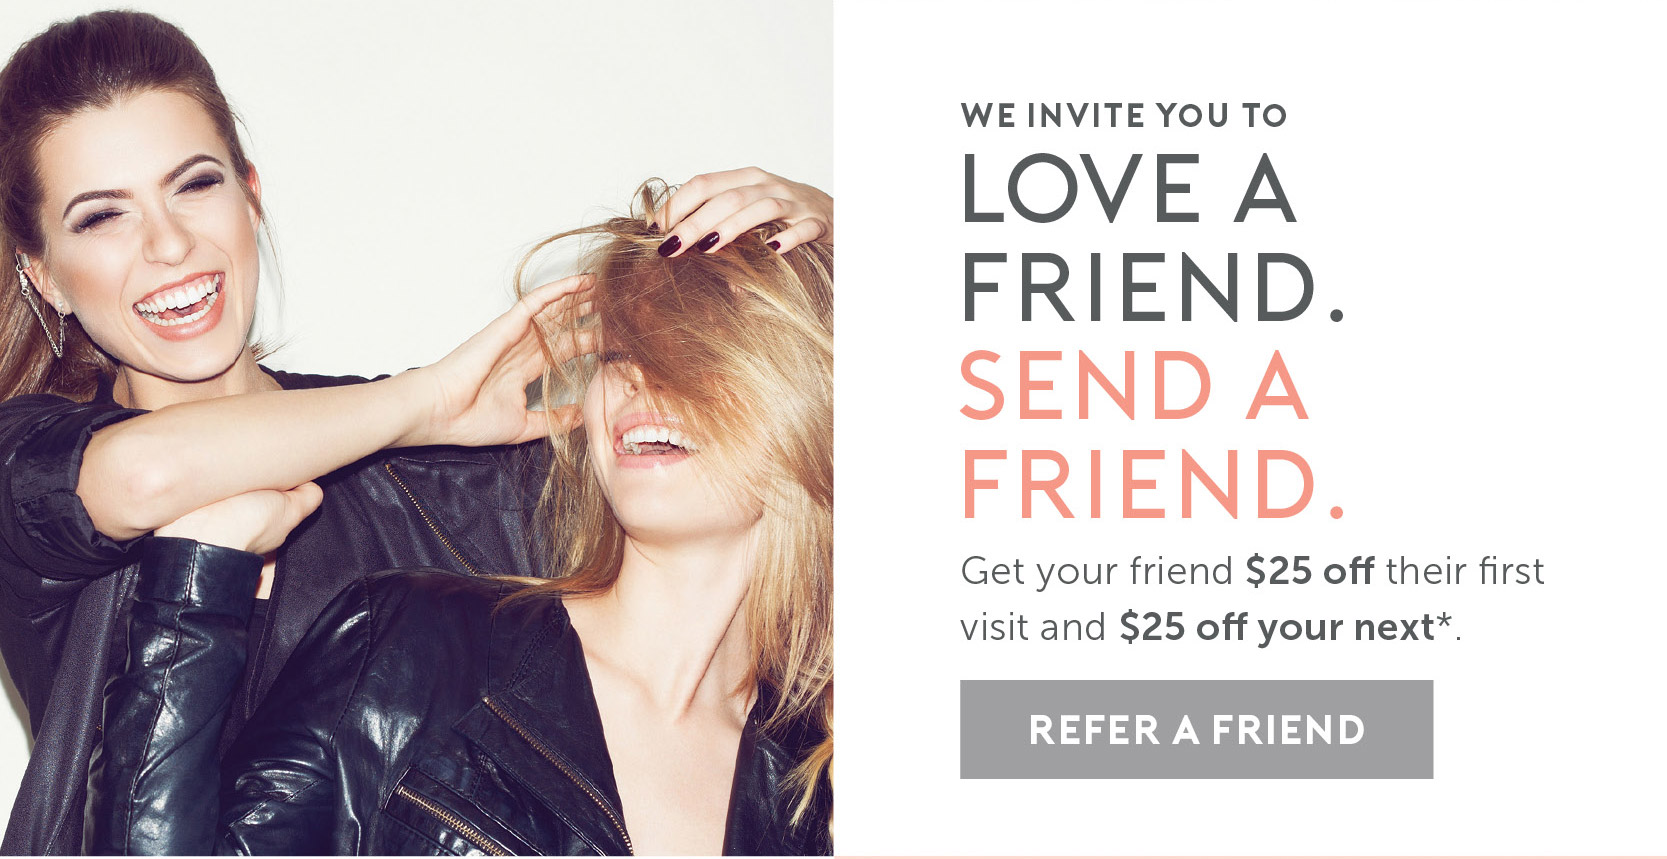 Love a Friend. Send a Friend. Get your friend $25 off their first visit and $25 off your next